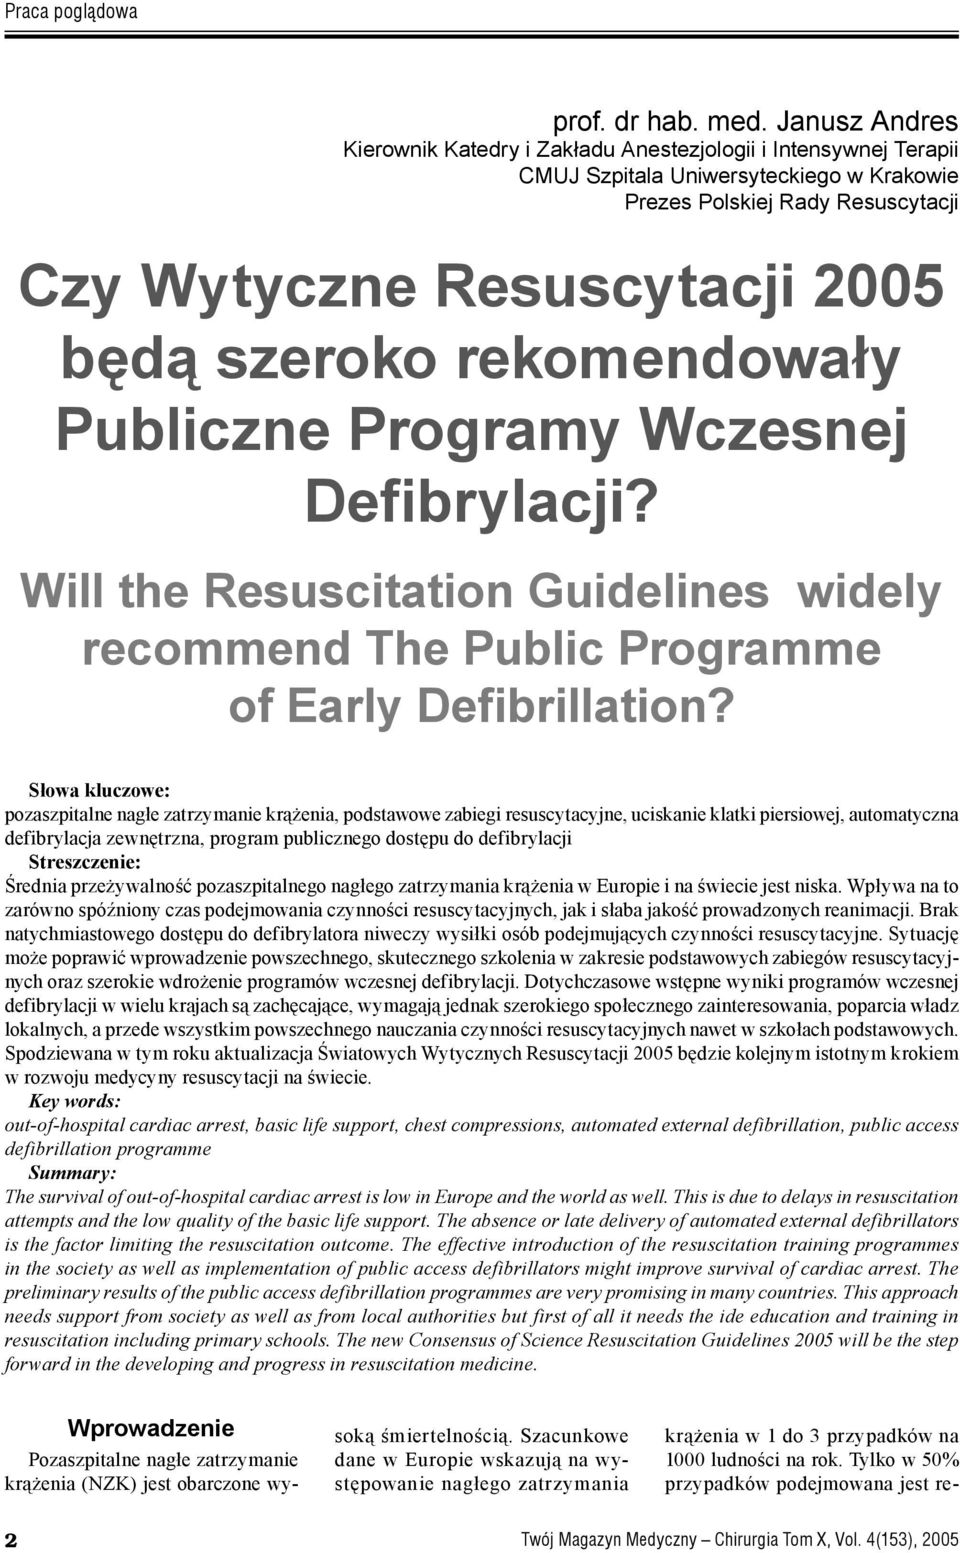 rekomendowały Publiczne Programy Wczesnej Defibrylacji? Will the Resuscitation Guidelines widely recommend The Public Programme of Early Defibrillation?